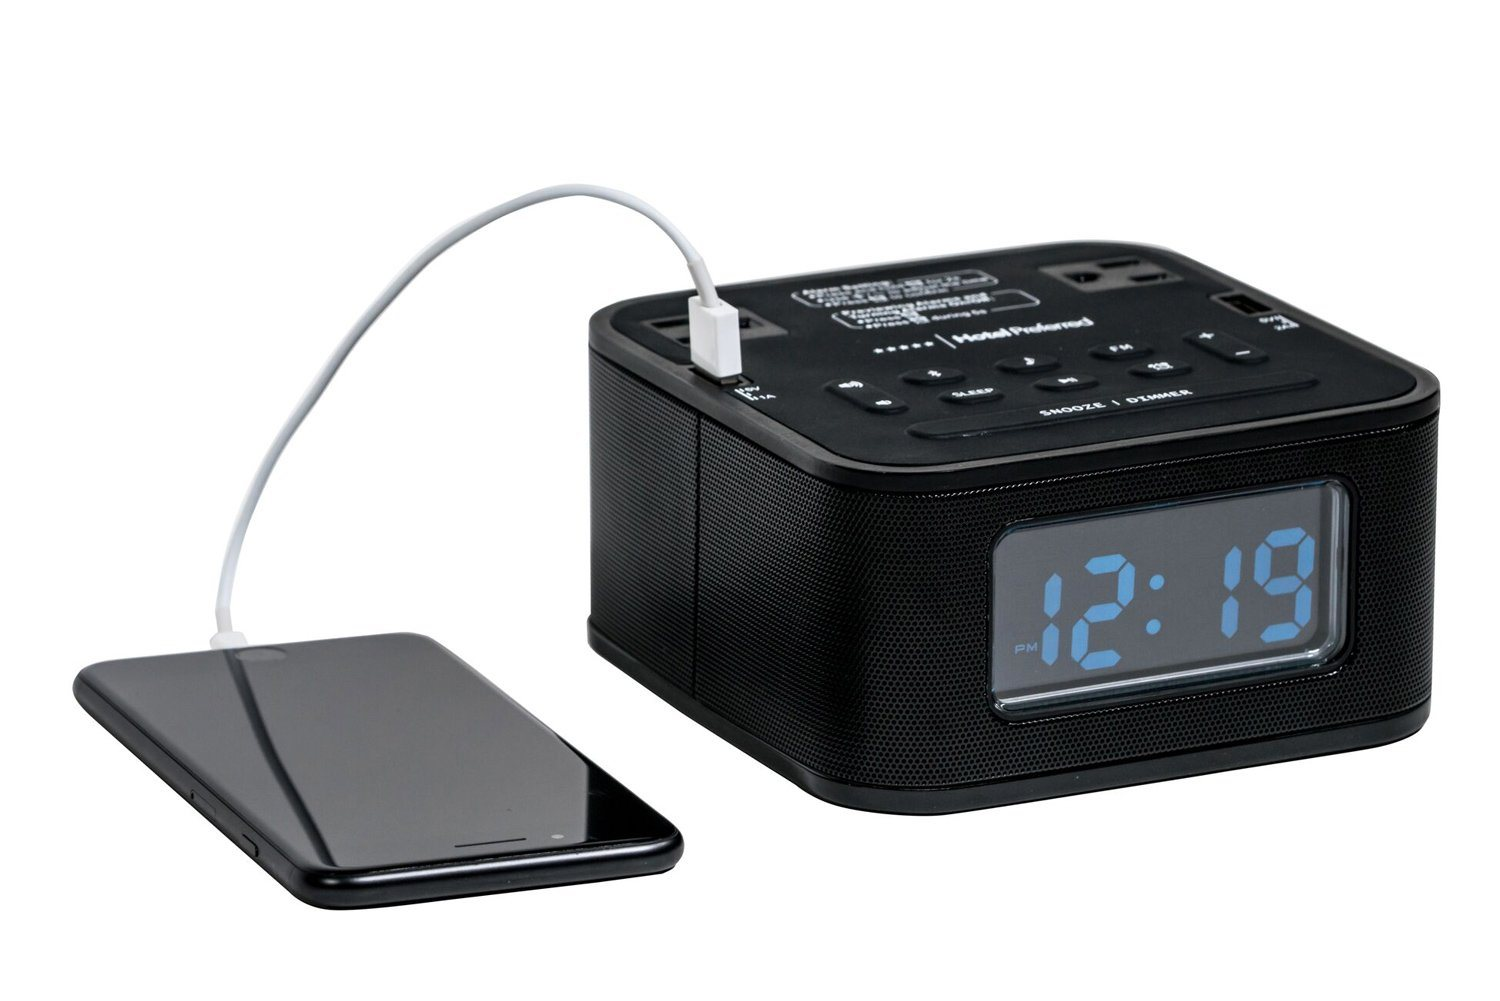 Electronics & Appliances - HPCLKR01 Alarm Clock